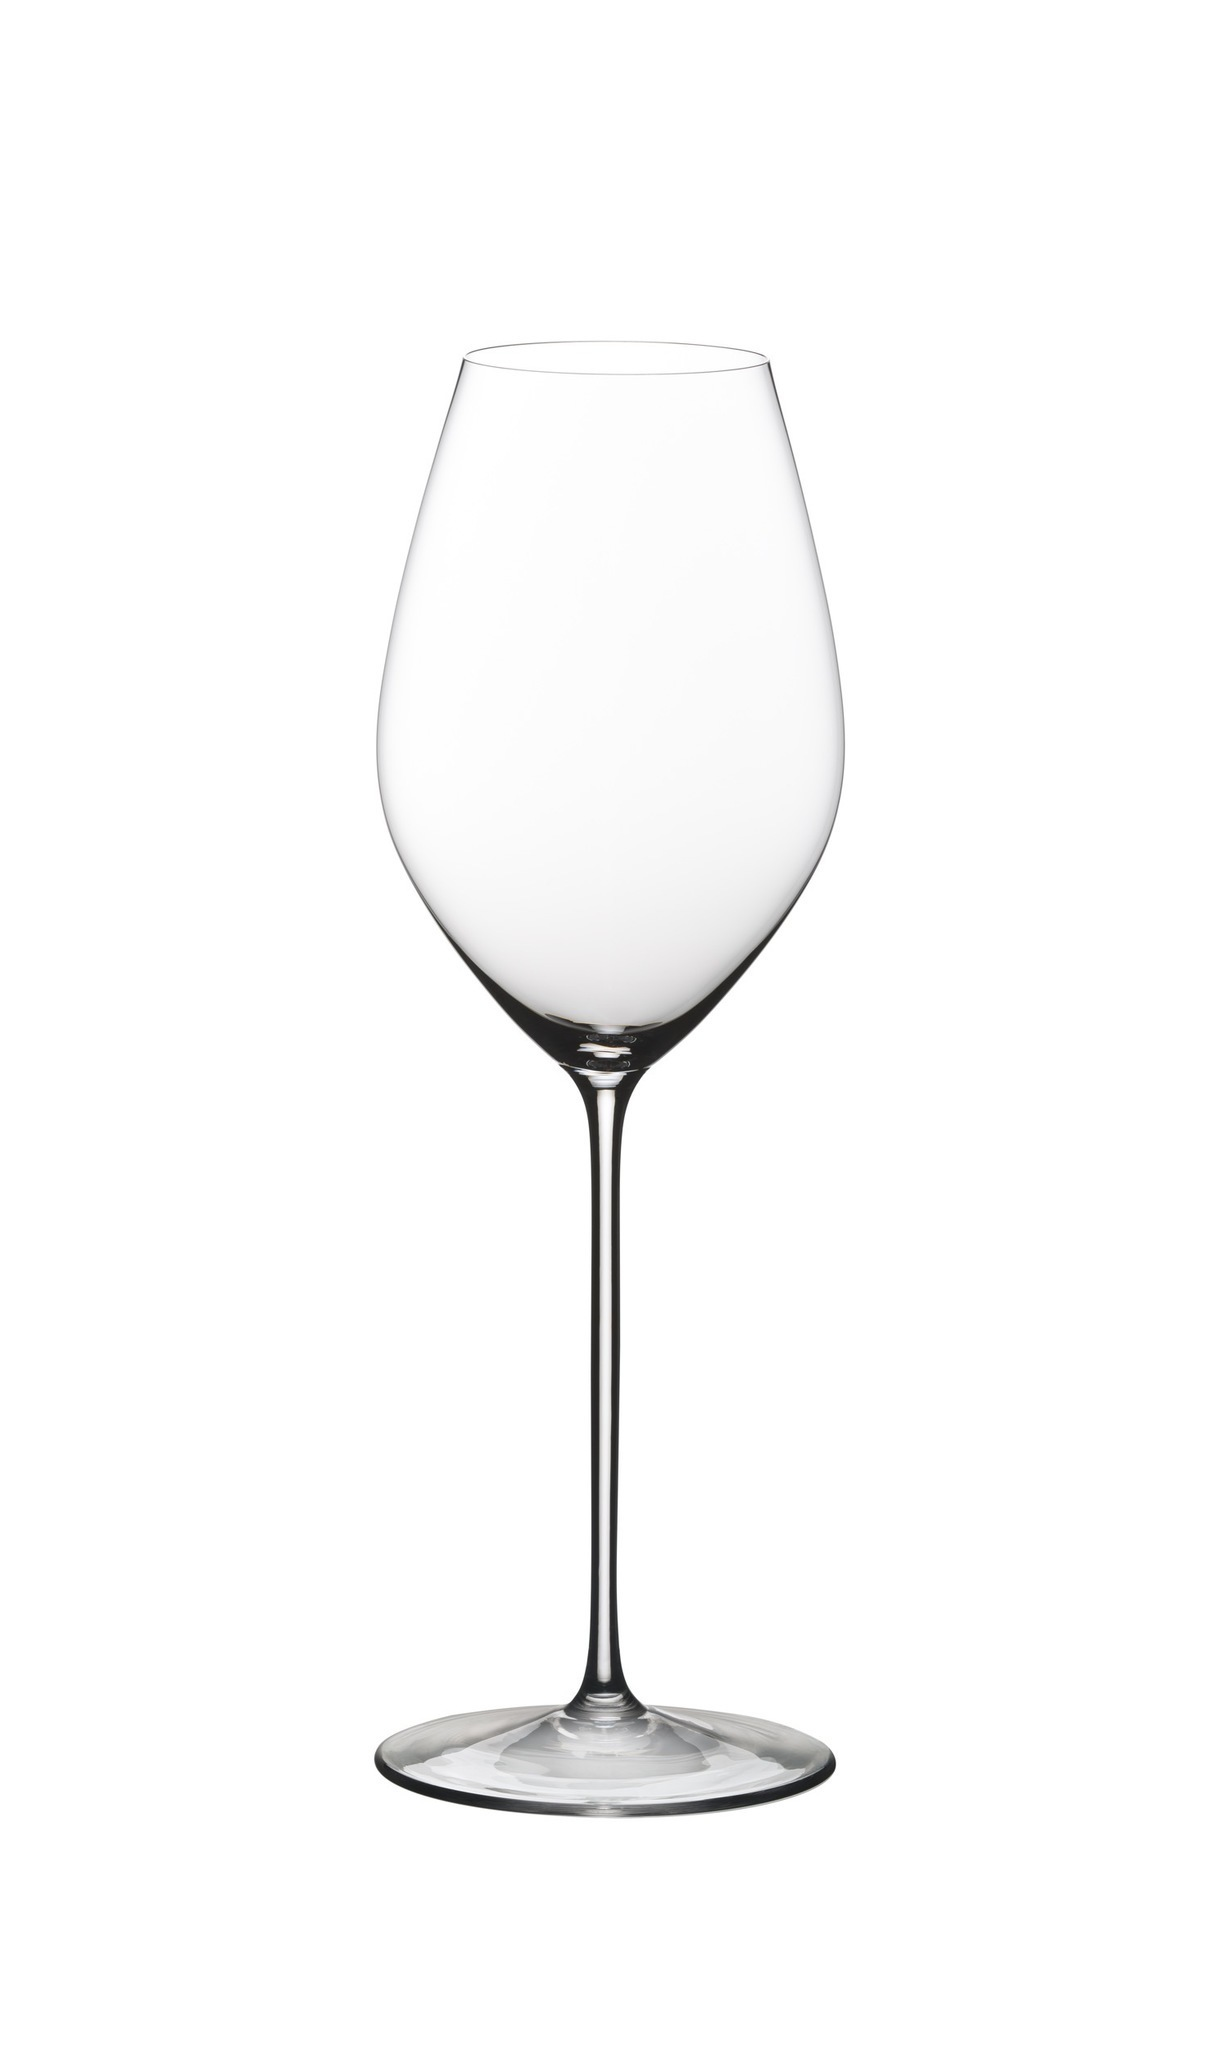 Бокал для шампанского Riedel Superleggero Champagne Wine Glass, 460 мл